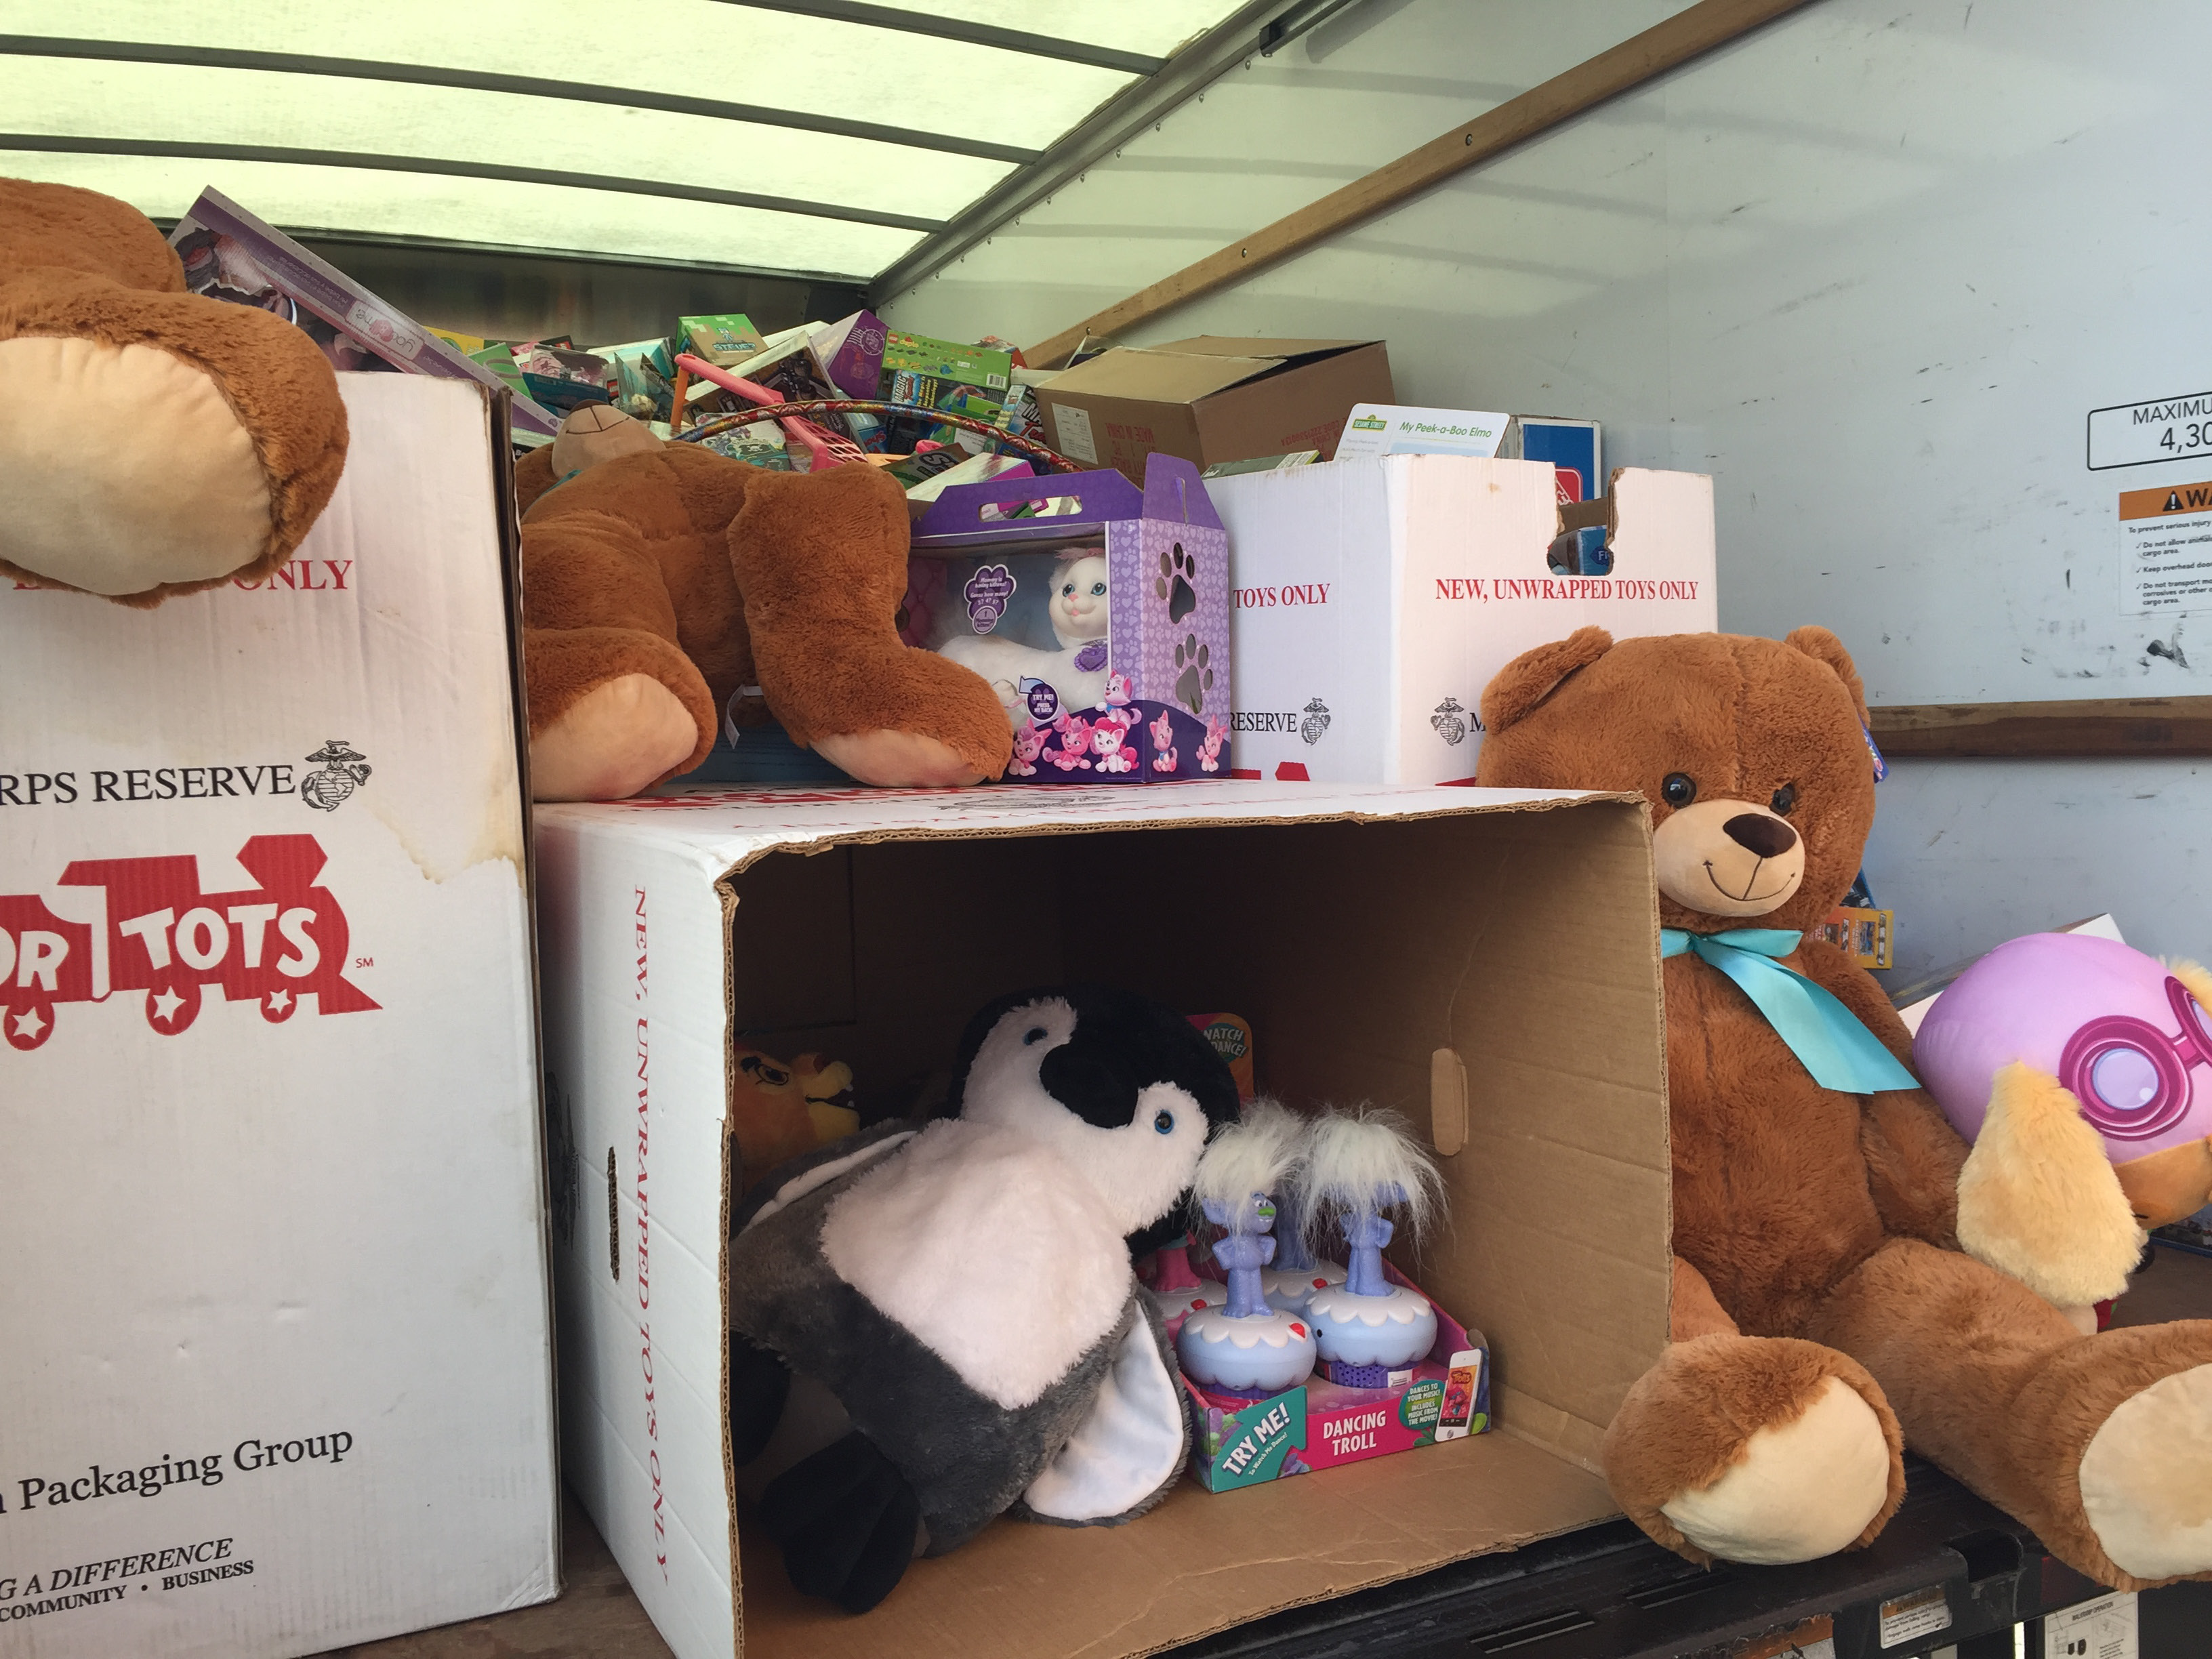 Over 1000 toys were delivered for Toys for Tots by UTC volunteers at the Plainville Marine Reserve headquarters, Friday, Dec. 2. |Ashley Kus, The Plainville Citizen.